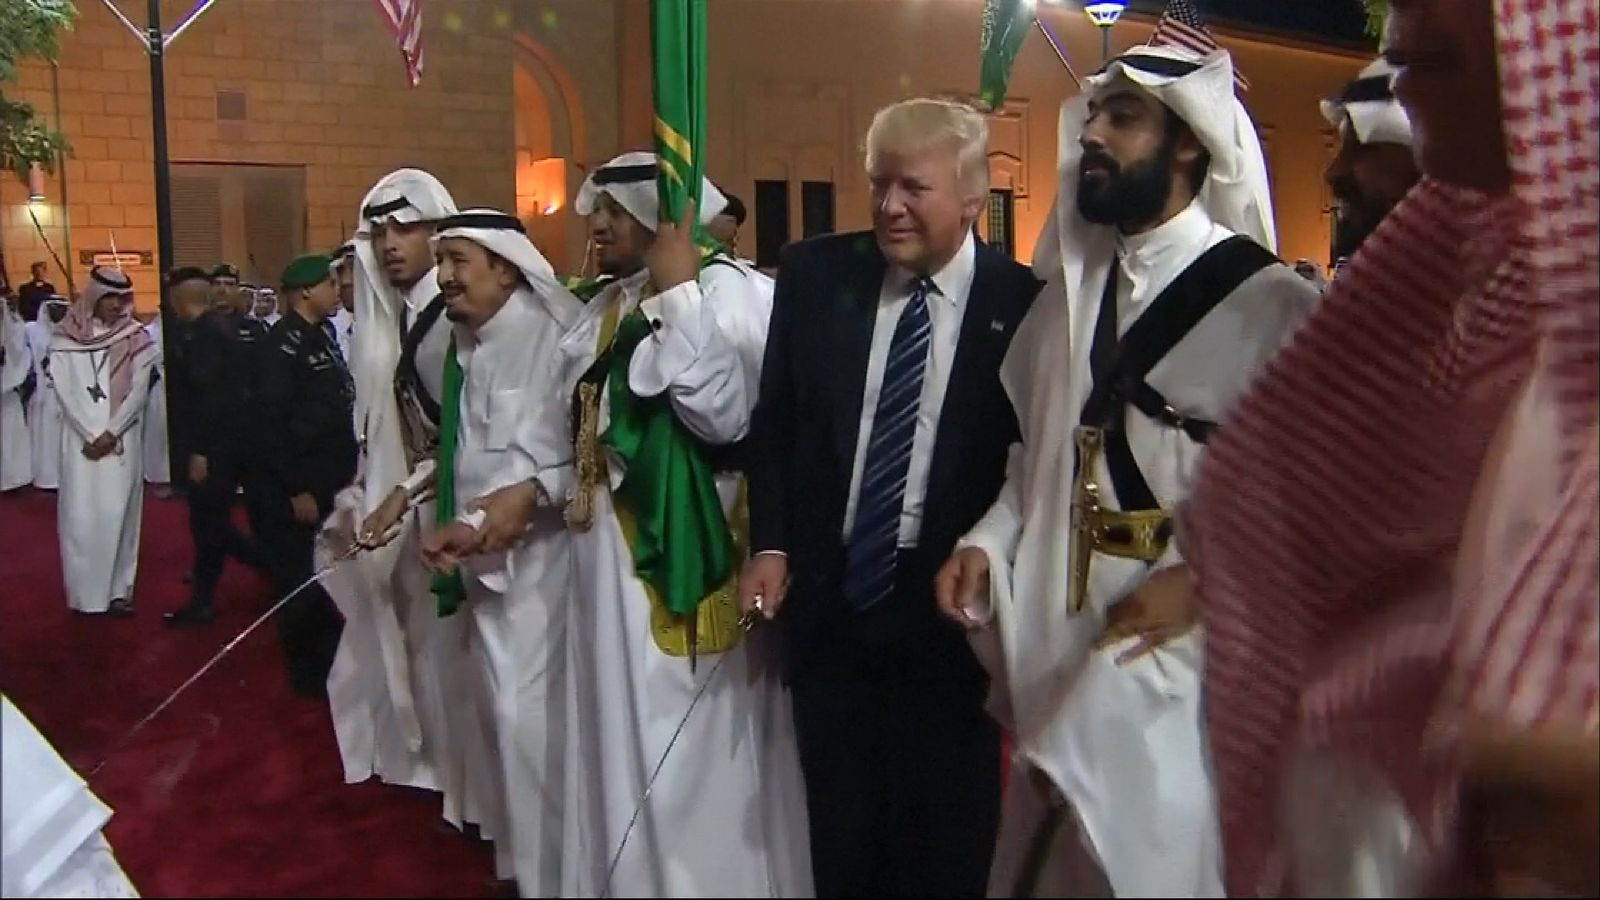 President Trump gets his bounce on as he performs a traditional Saudi sword dance